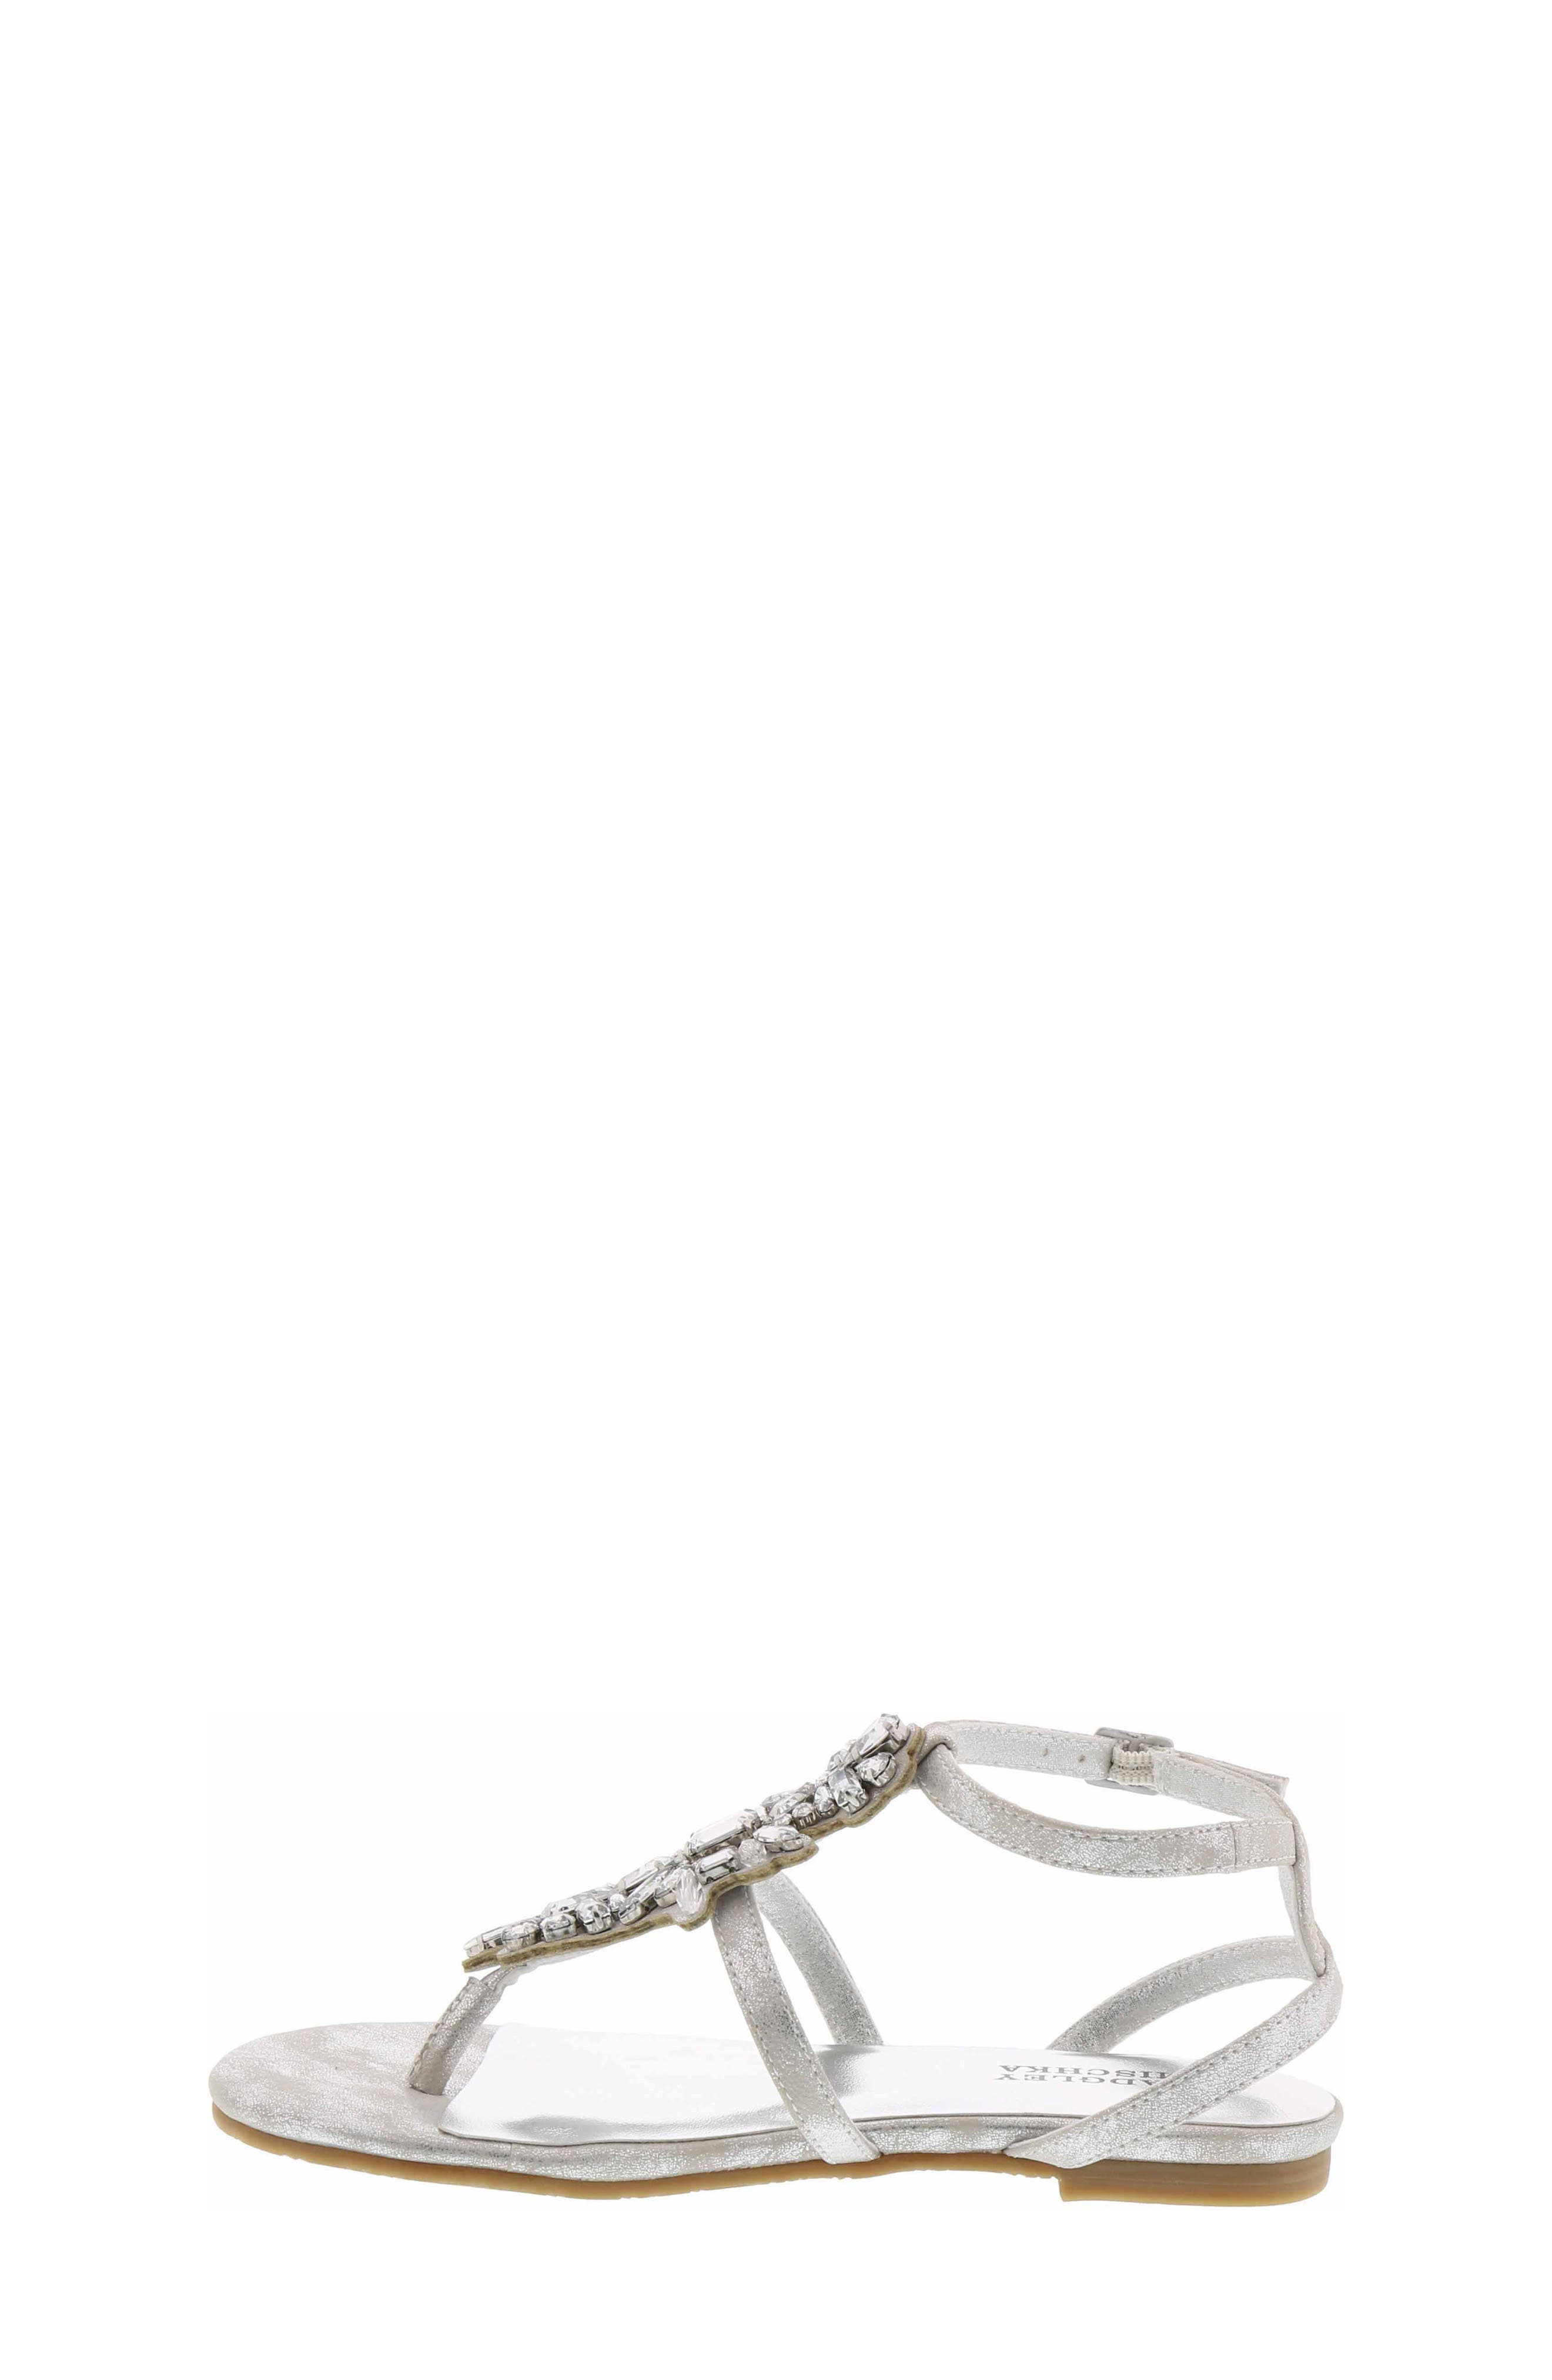 Cara Barstow Embellished Sandal,                             Alternate thumbnail 3, color,                             Light Silver